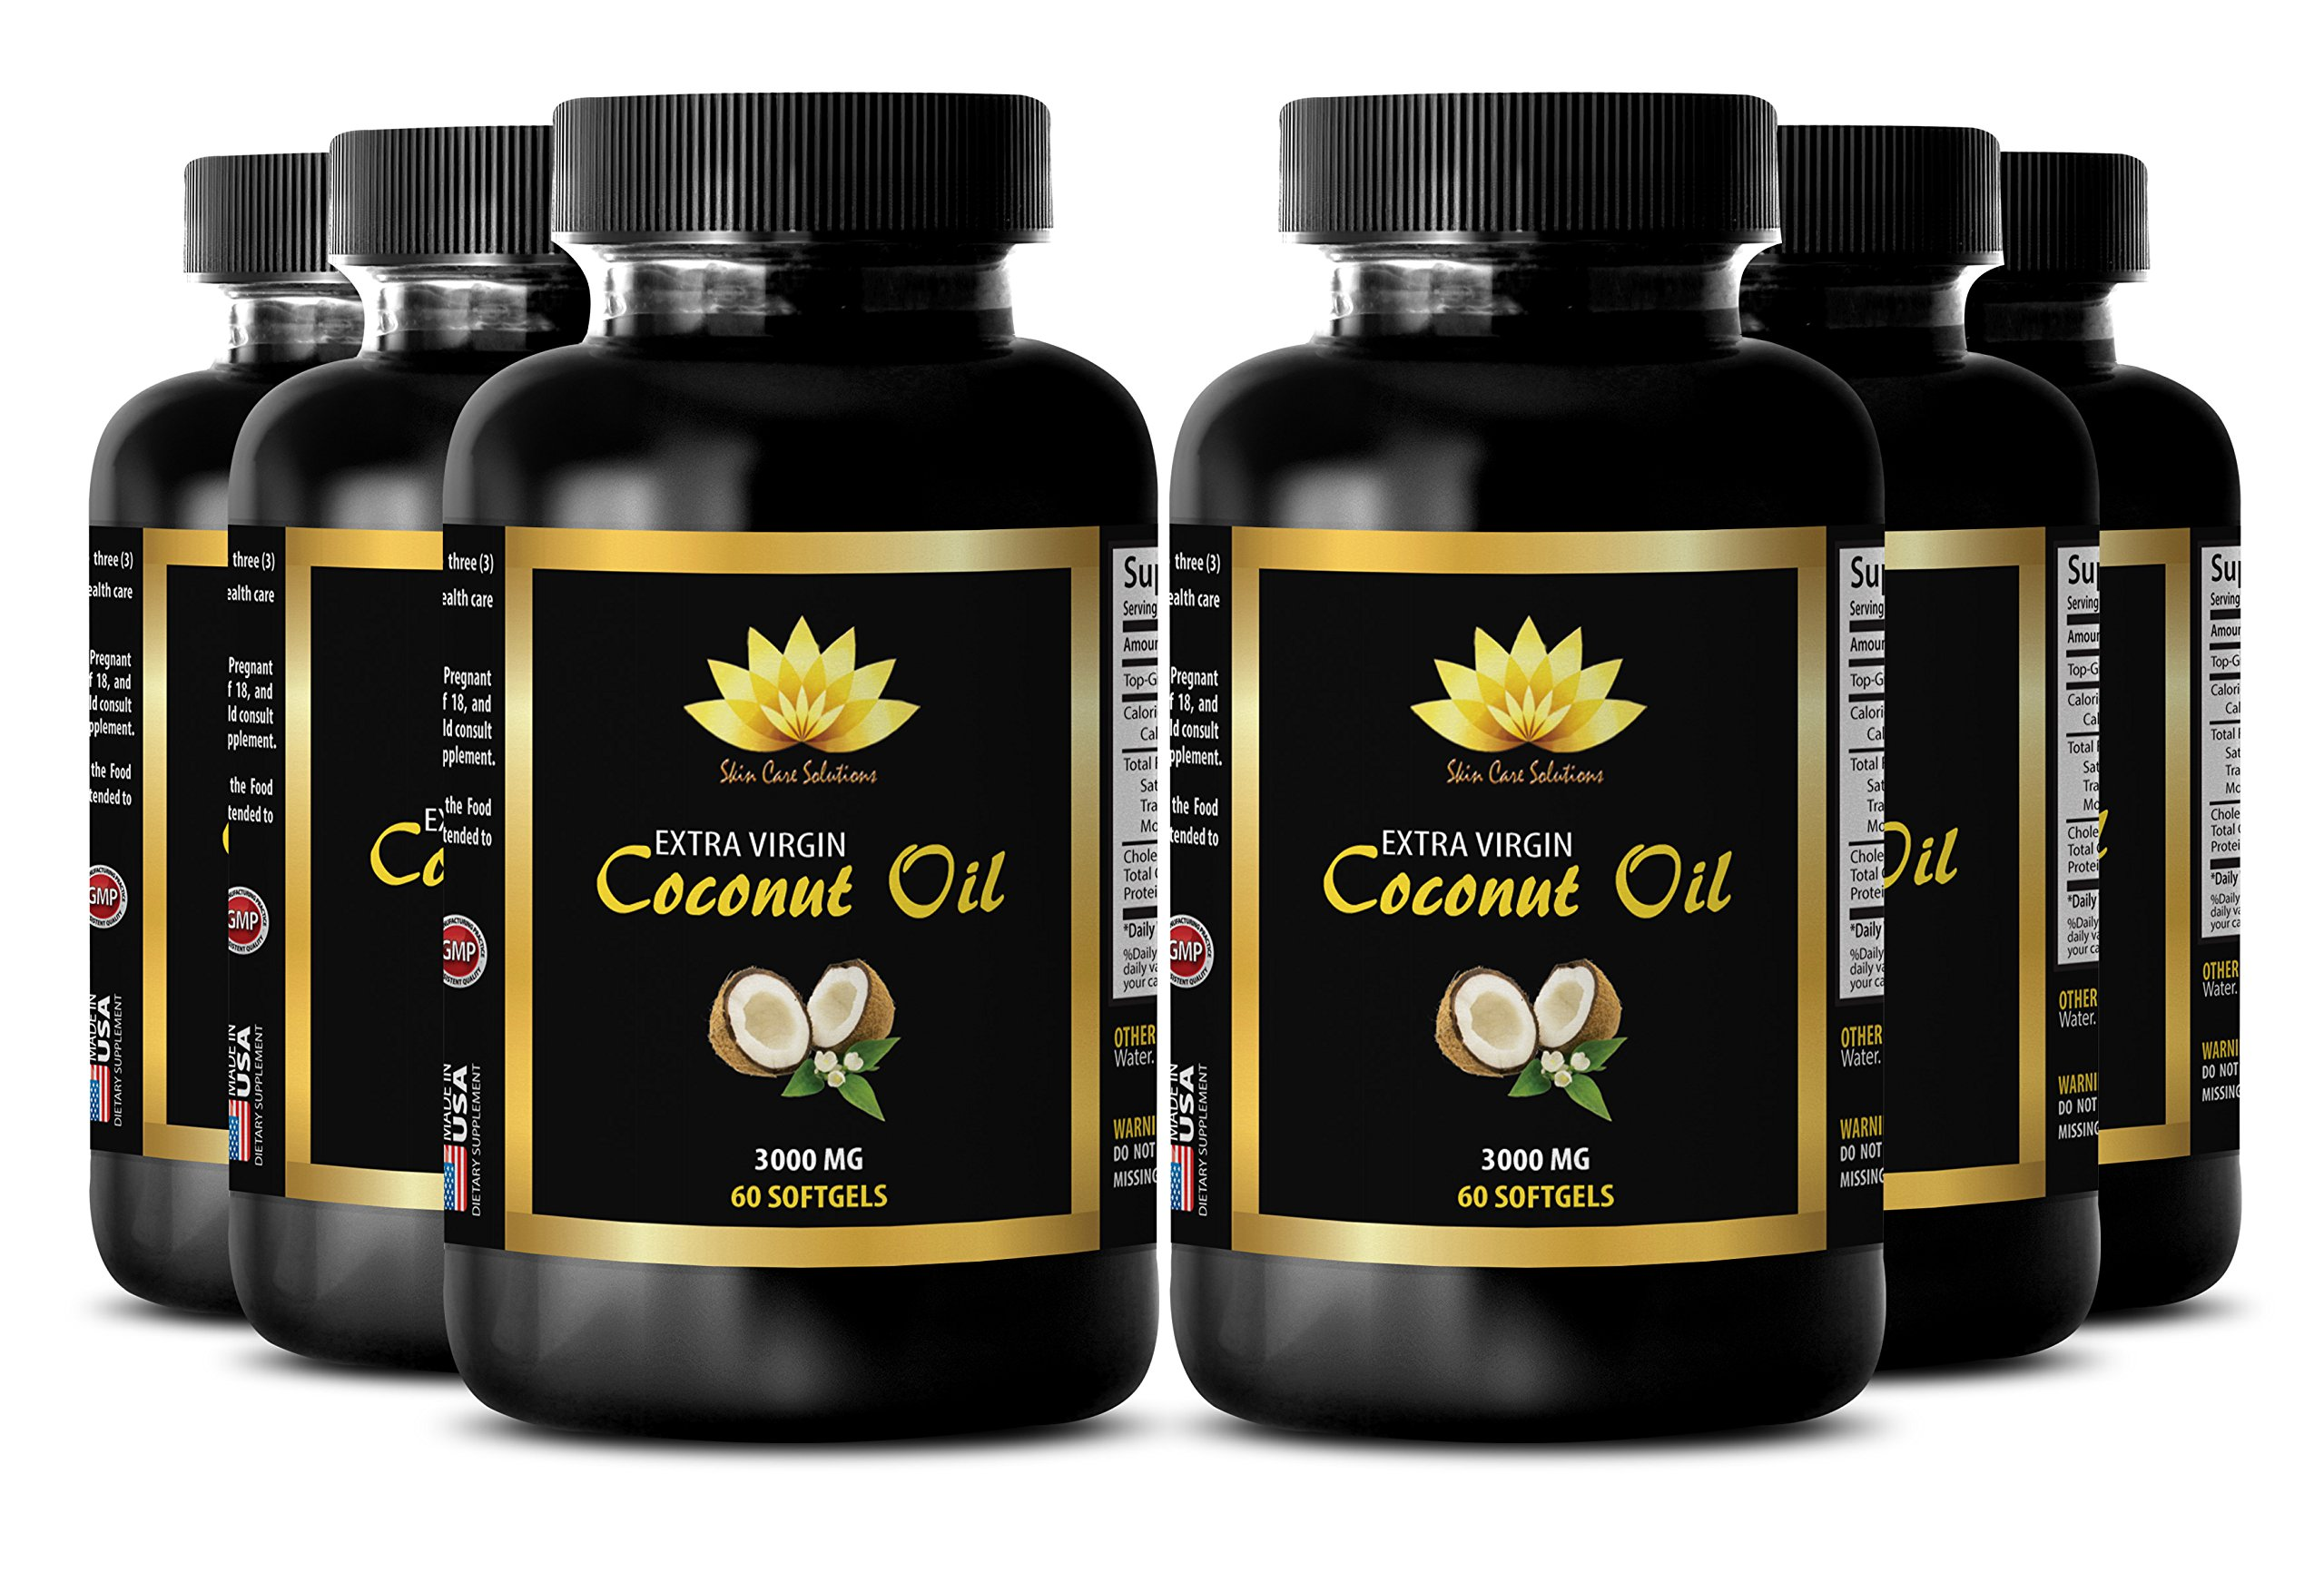 Memory booster - EXTRA VIRGIN COCONUT OIL 3000 MG - Memory improvement - 6 Bottles 360 Softgels